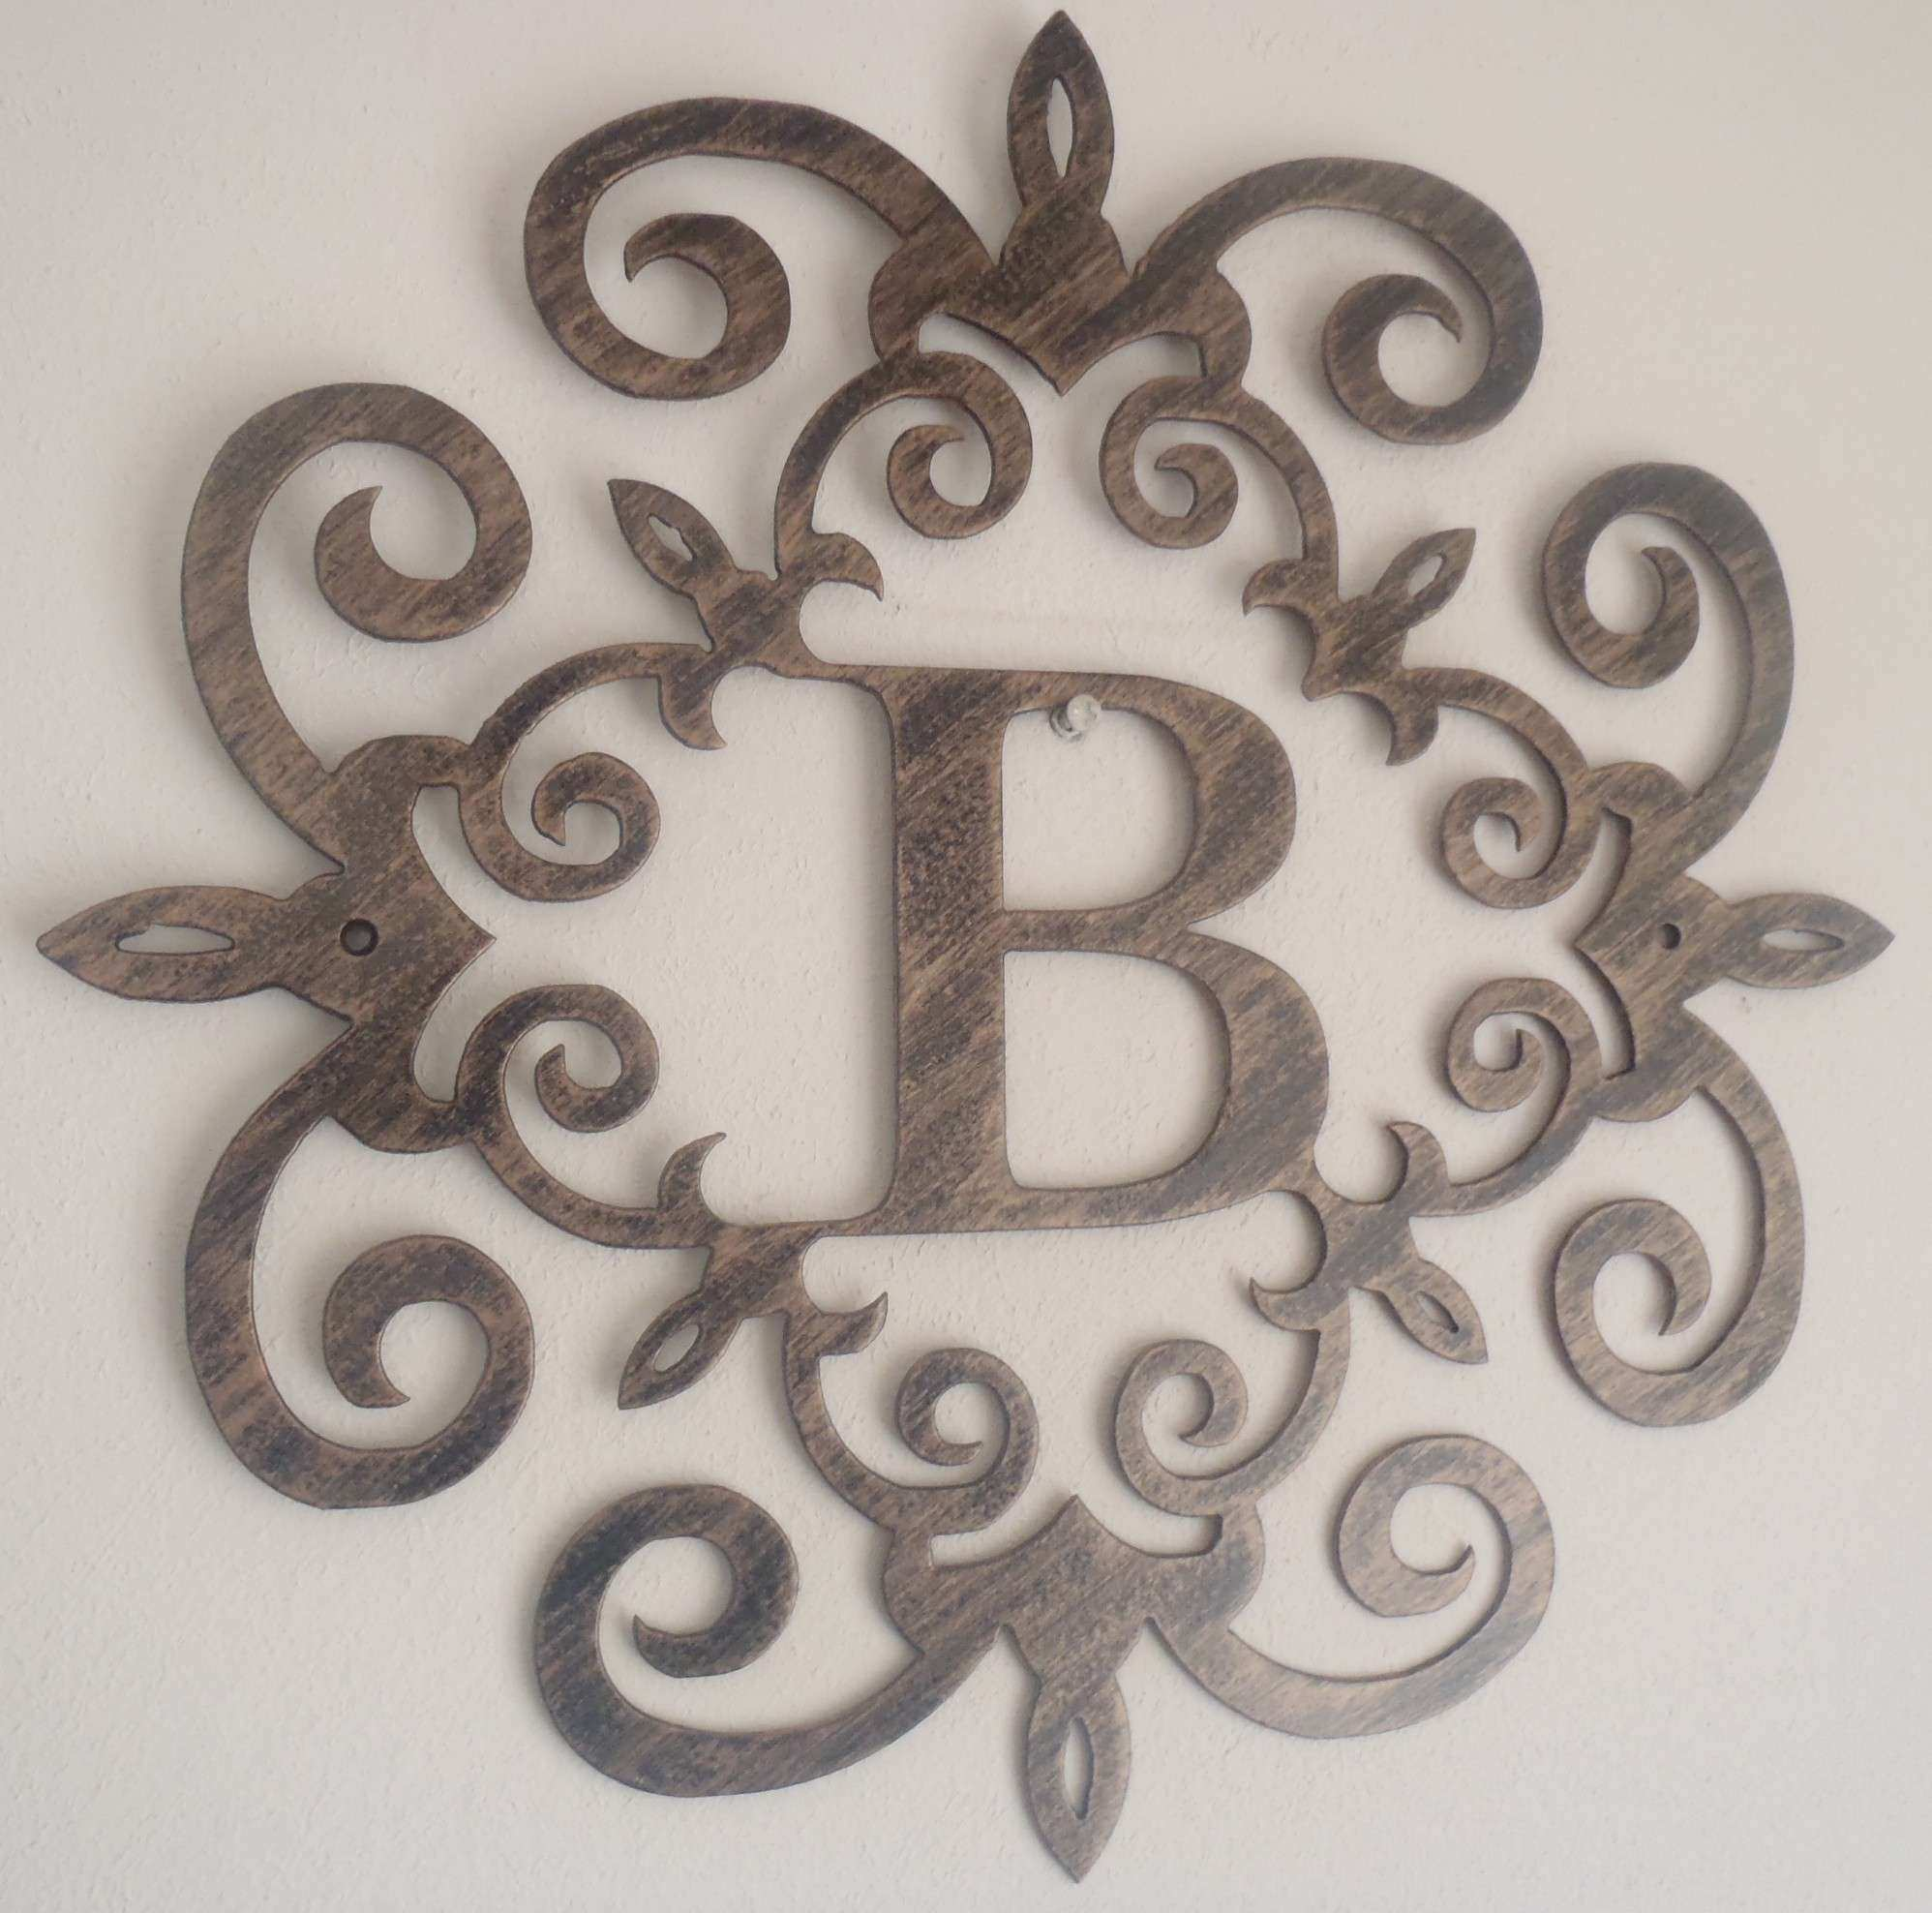 B Metal Letters For Wall Decor Decorating